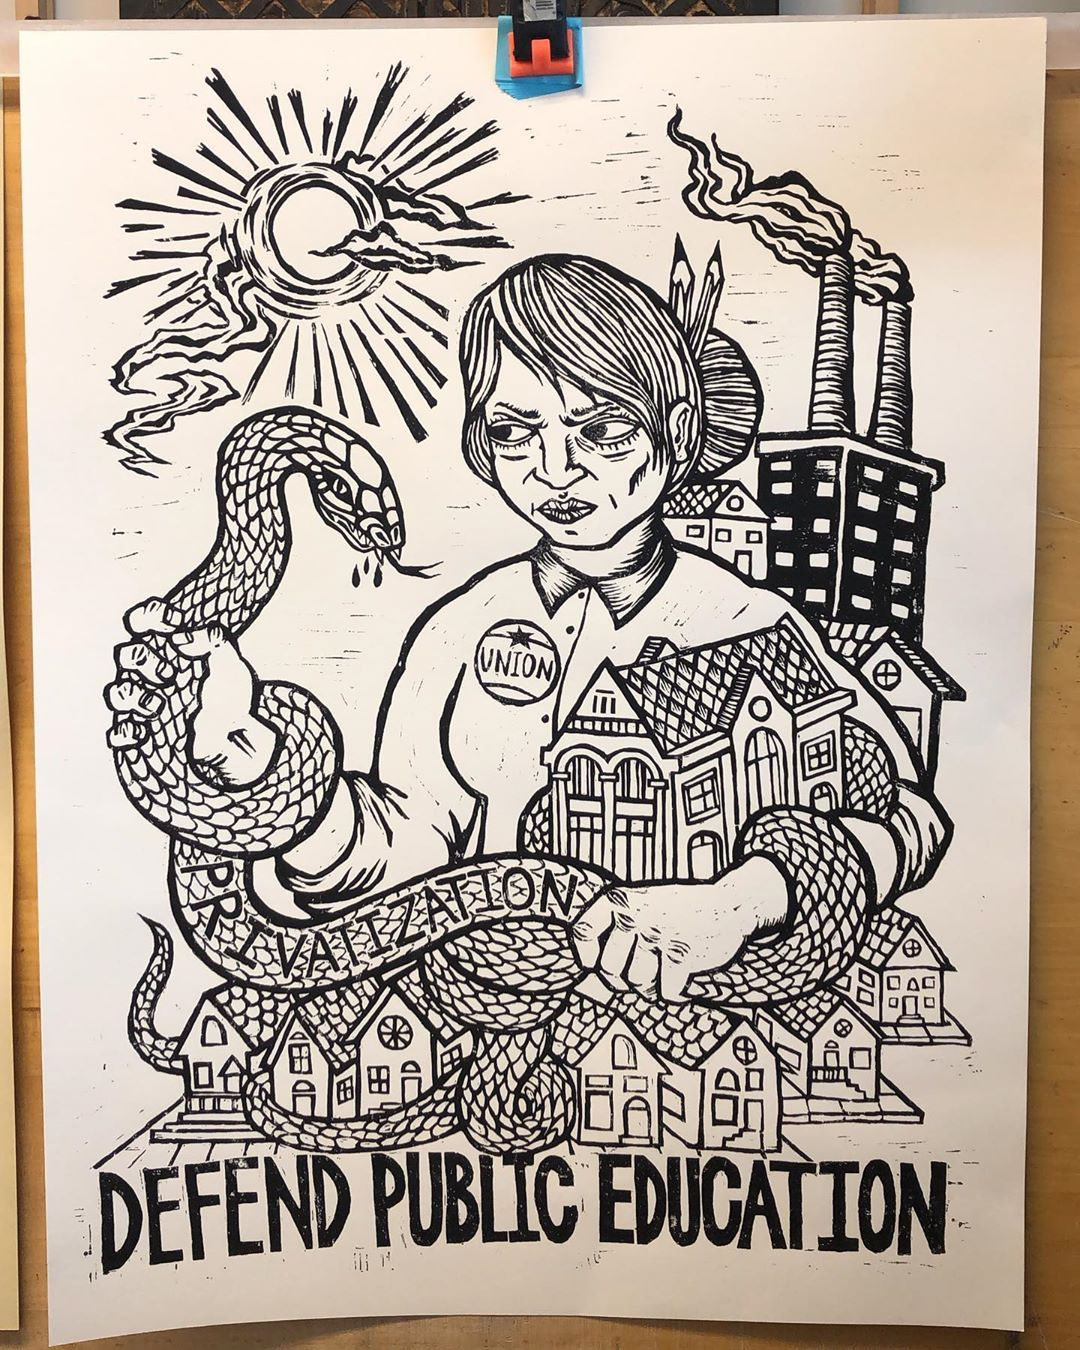 Amplifier On Instagram Defend Public Education By Johnfleissner Discovered During Our Studio Visit With Raouldeal At Protest Art Activism Art Political Art